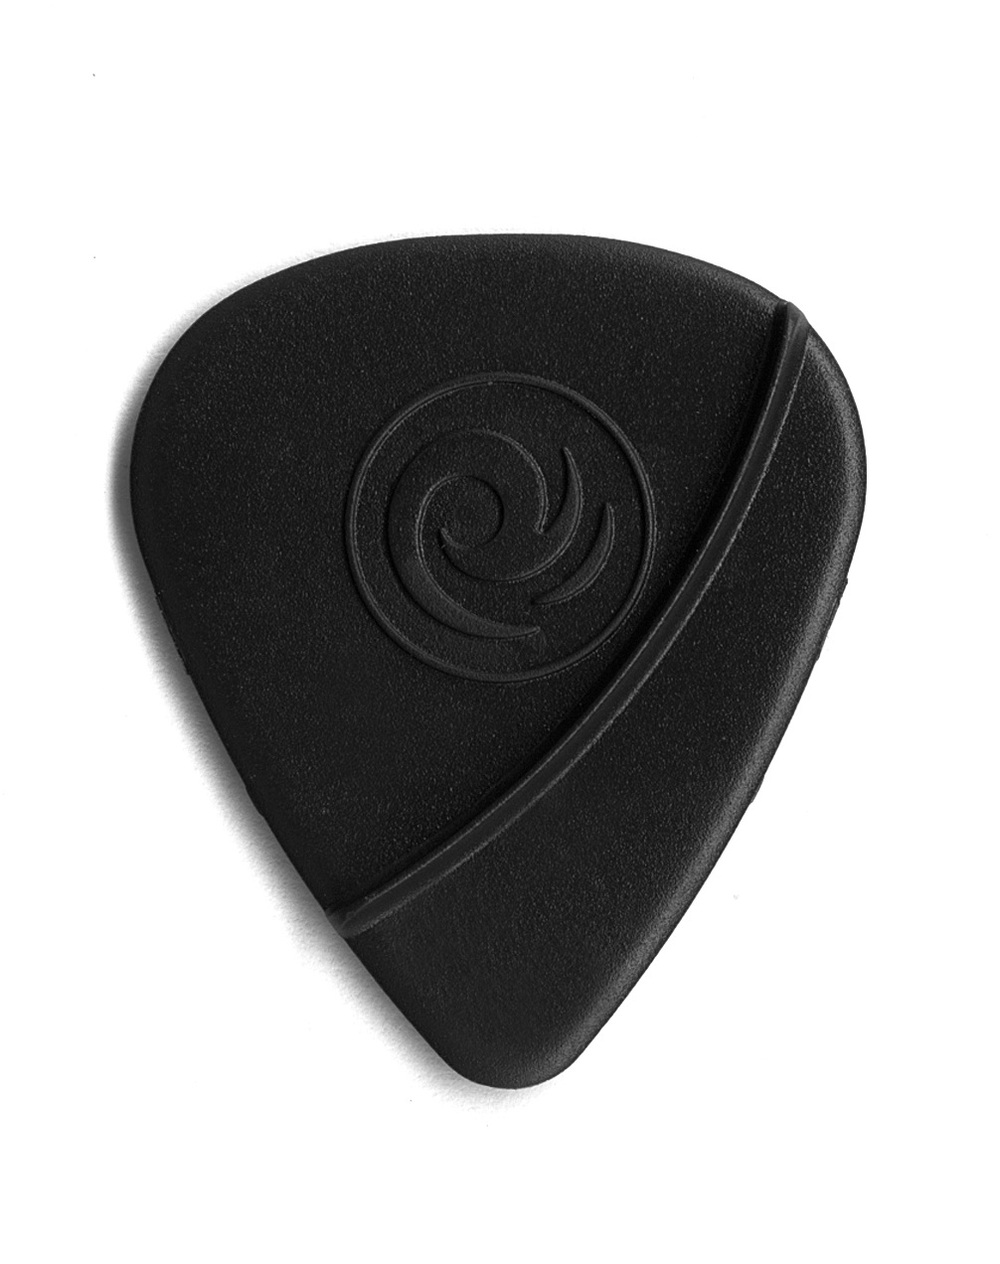 Pick Rite is perfect for beginners learning how to hold a pick, ensuring proper finger placement for optimum picking.